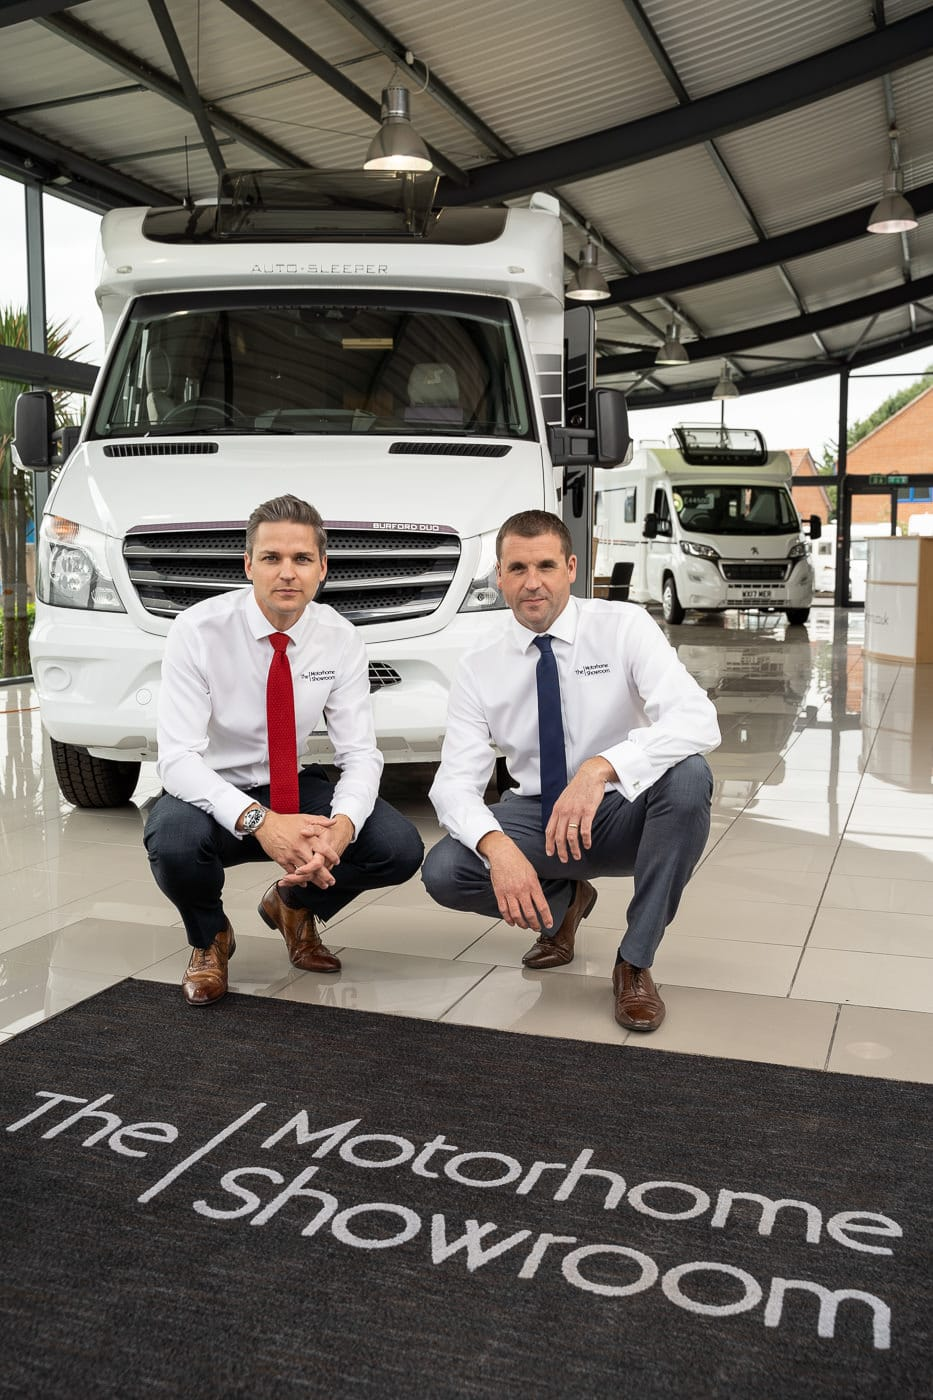 The Motorhome showroom directors